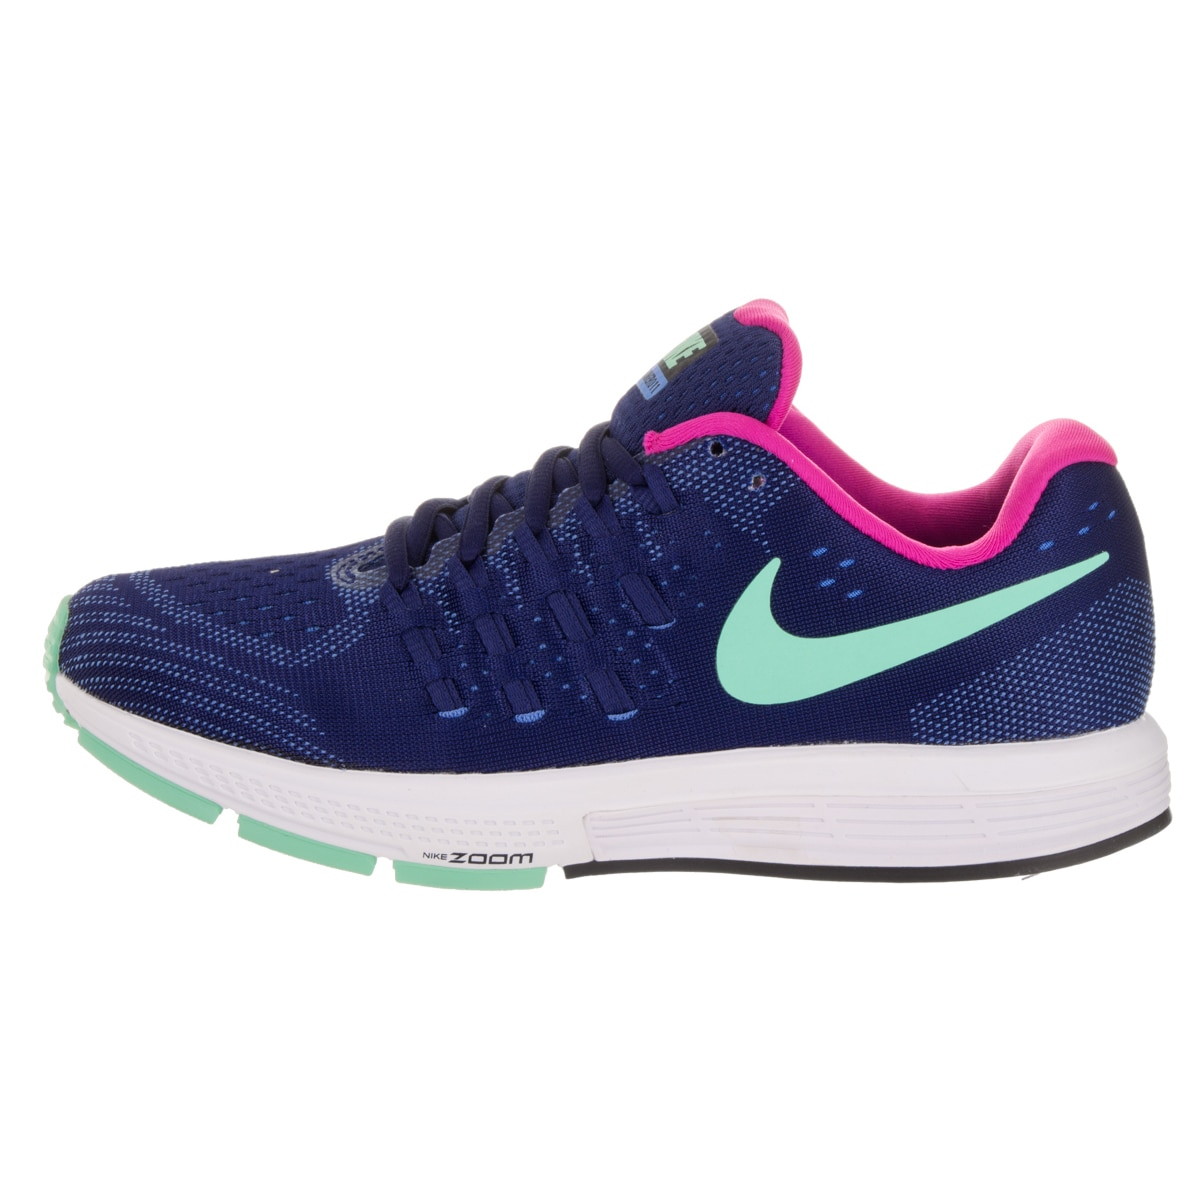 ... new style shop nike womens air zoom vomero 11 running shoes free  shipping today overstock 13620291 ... 3fbfced2aa